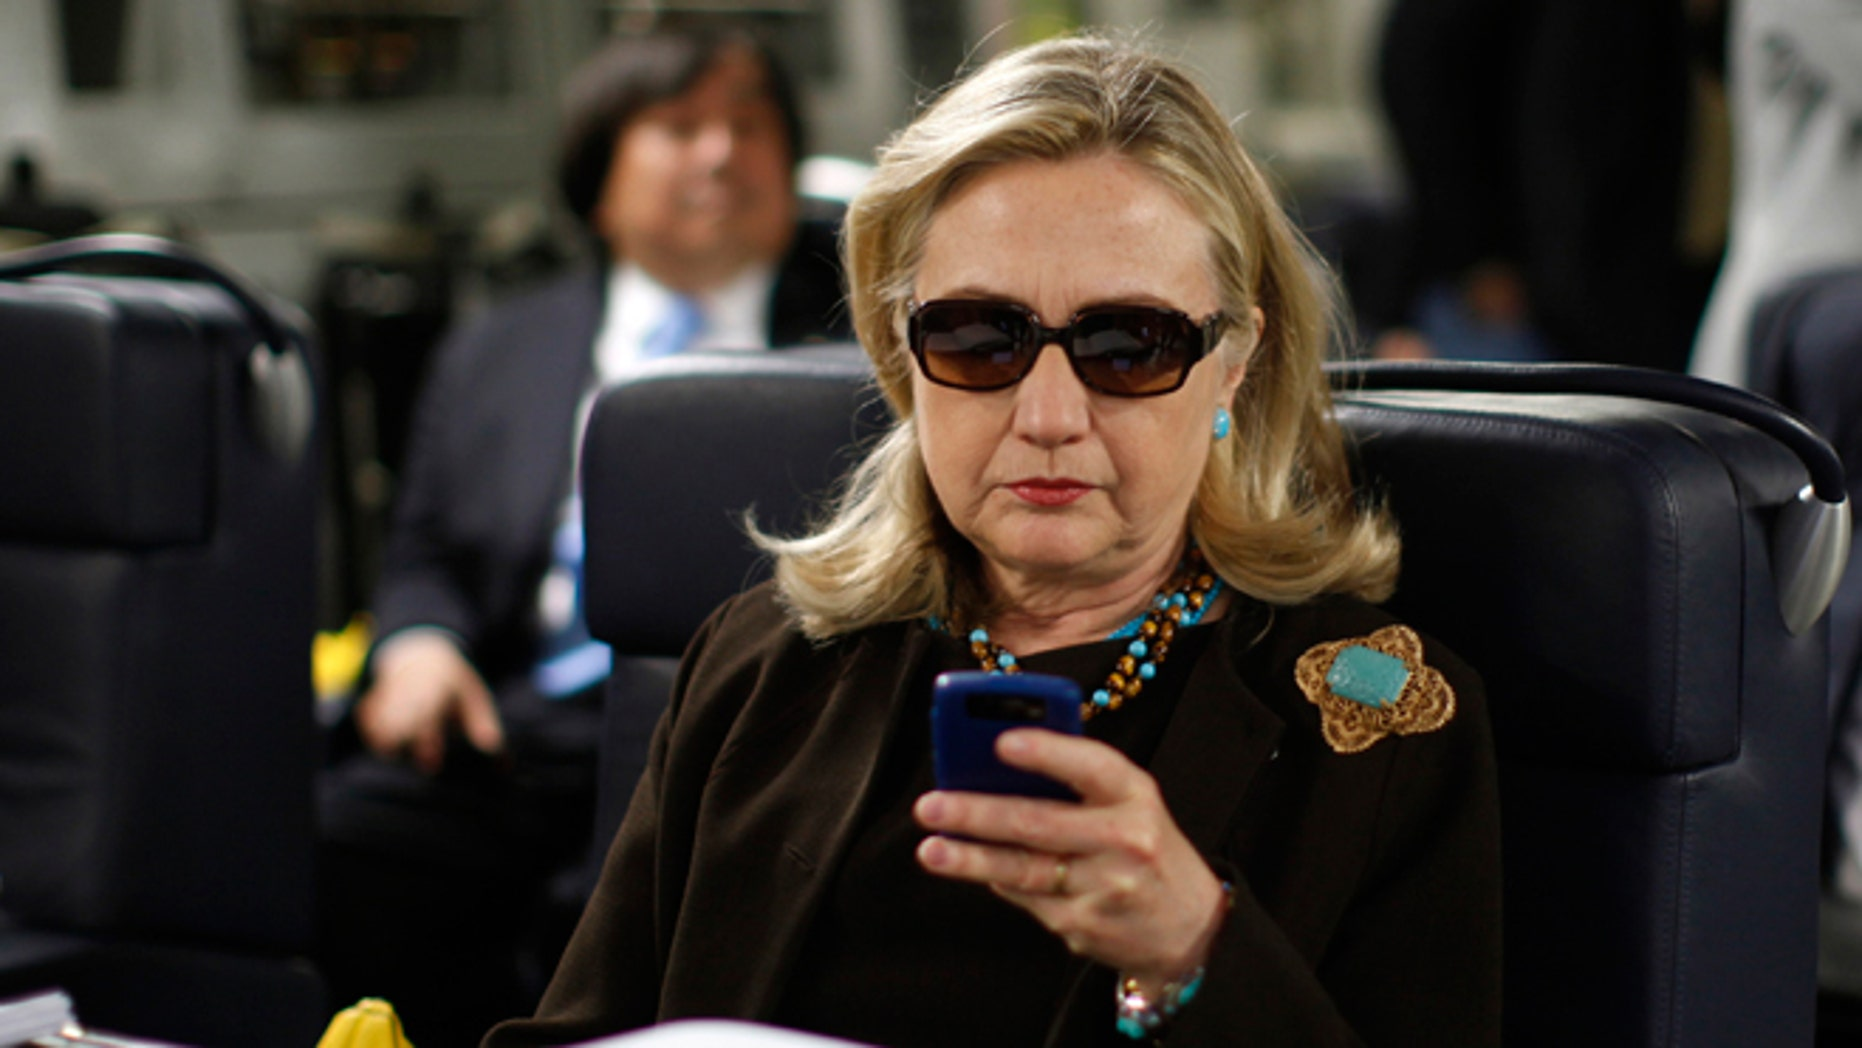 FILE - Oct. 18, 2011: Then-Secretary of State Hillary Rodham Clinton checks her Blackberry from a desk inside a C-17 military plane upon her departure from Malta, in the Mediterranean Sea, bound for Tripoli, Libya.